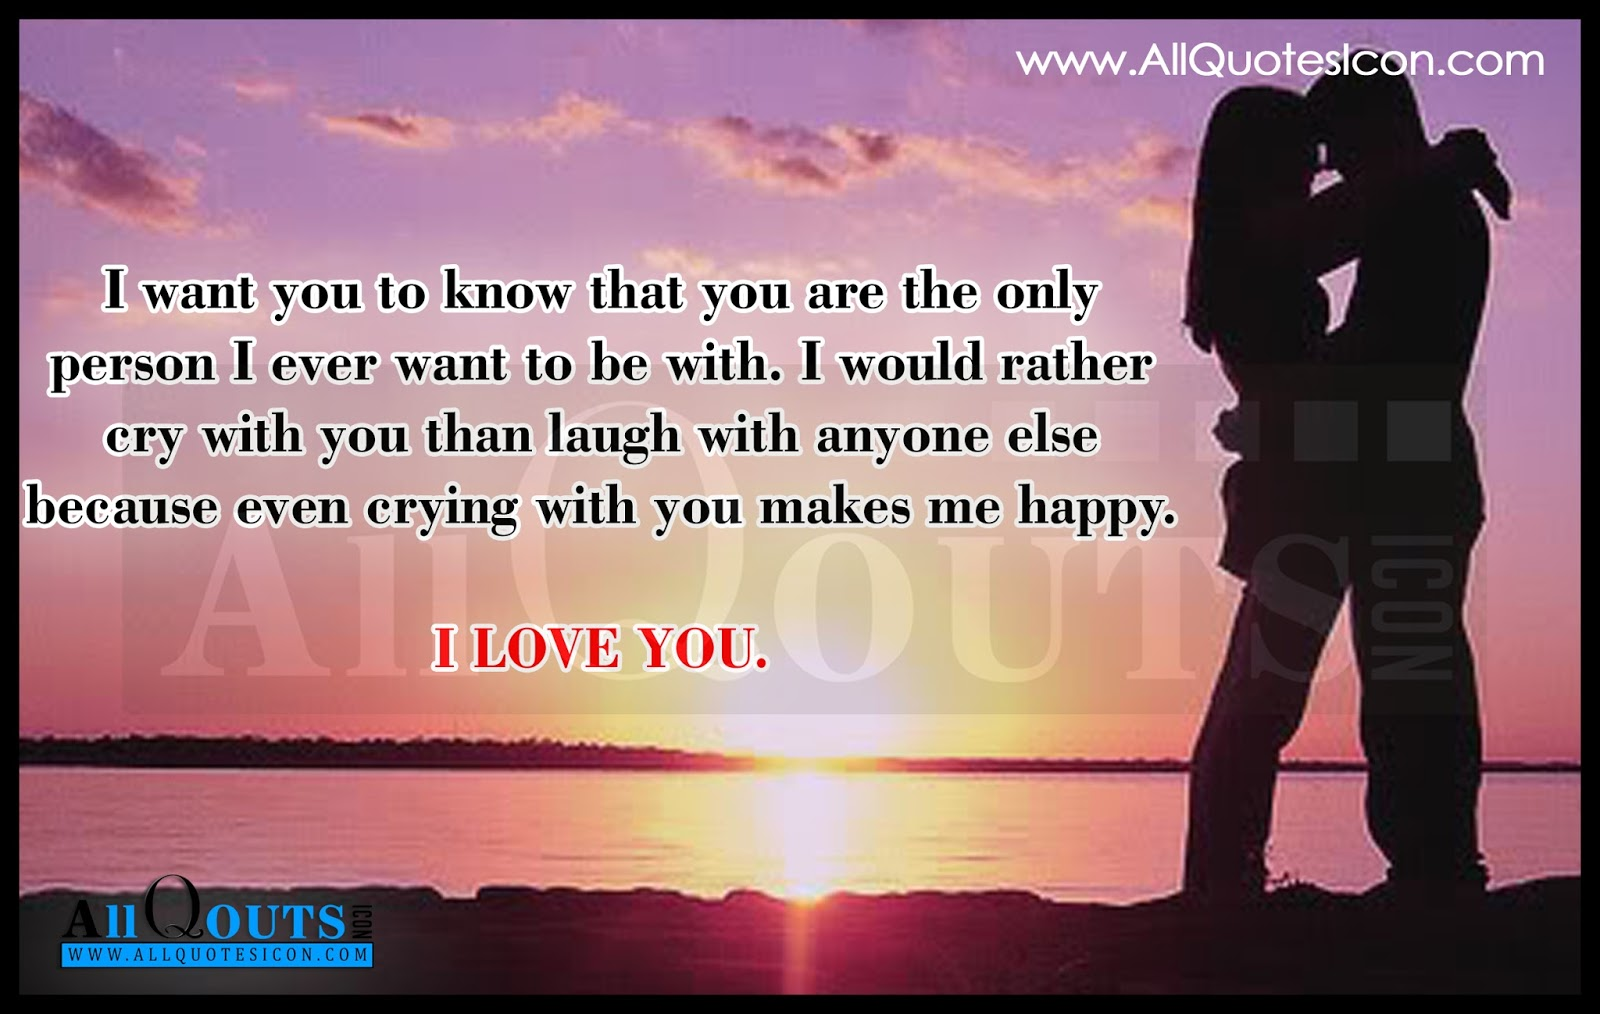 You Makes me Happy Images Best Love Quotes Pictures for Her English Quotes Wallpapers www ...